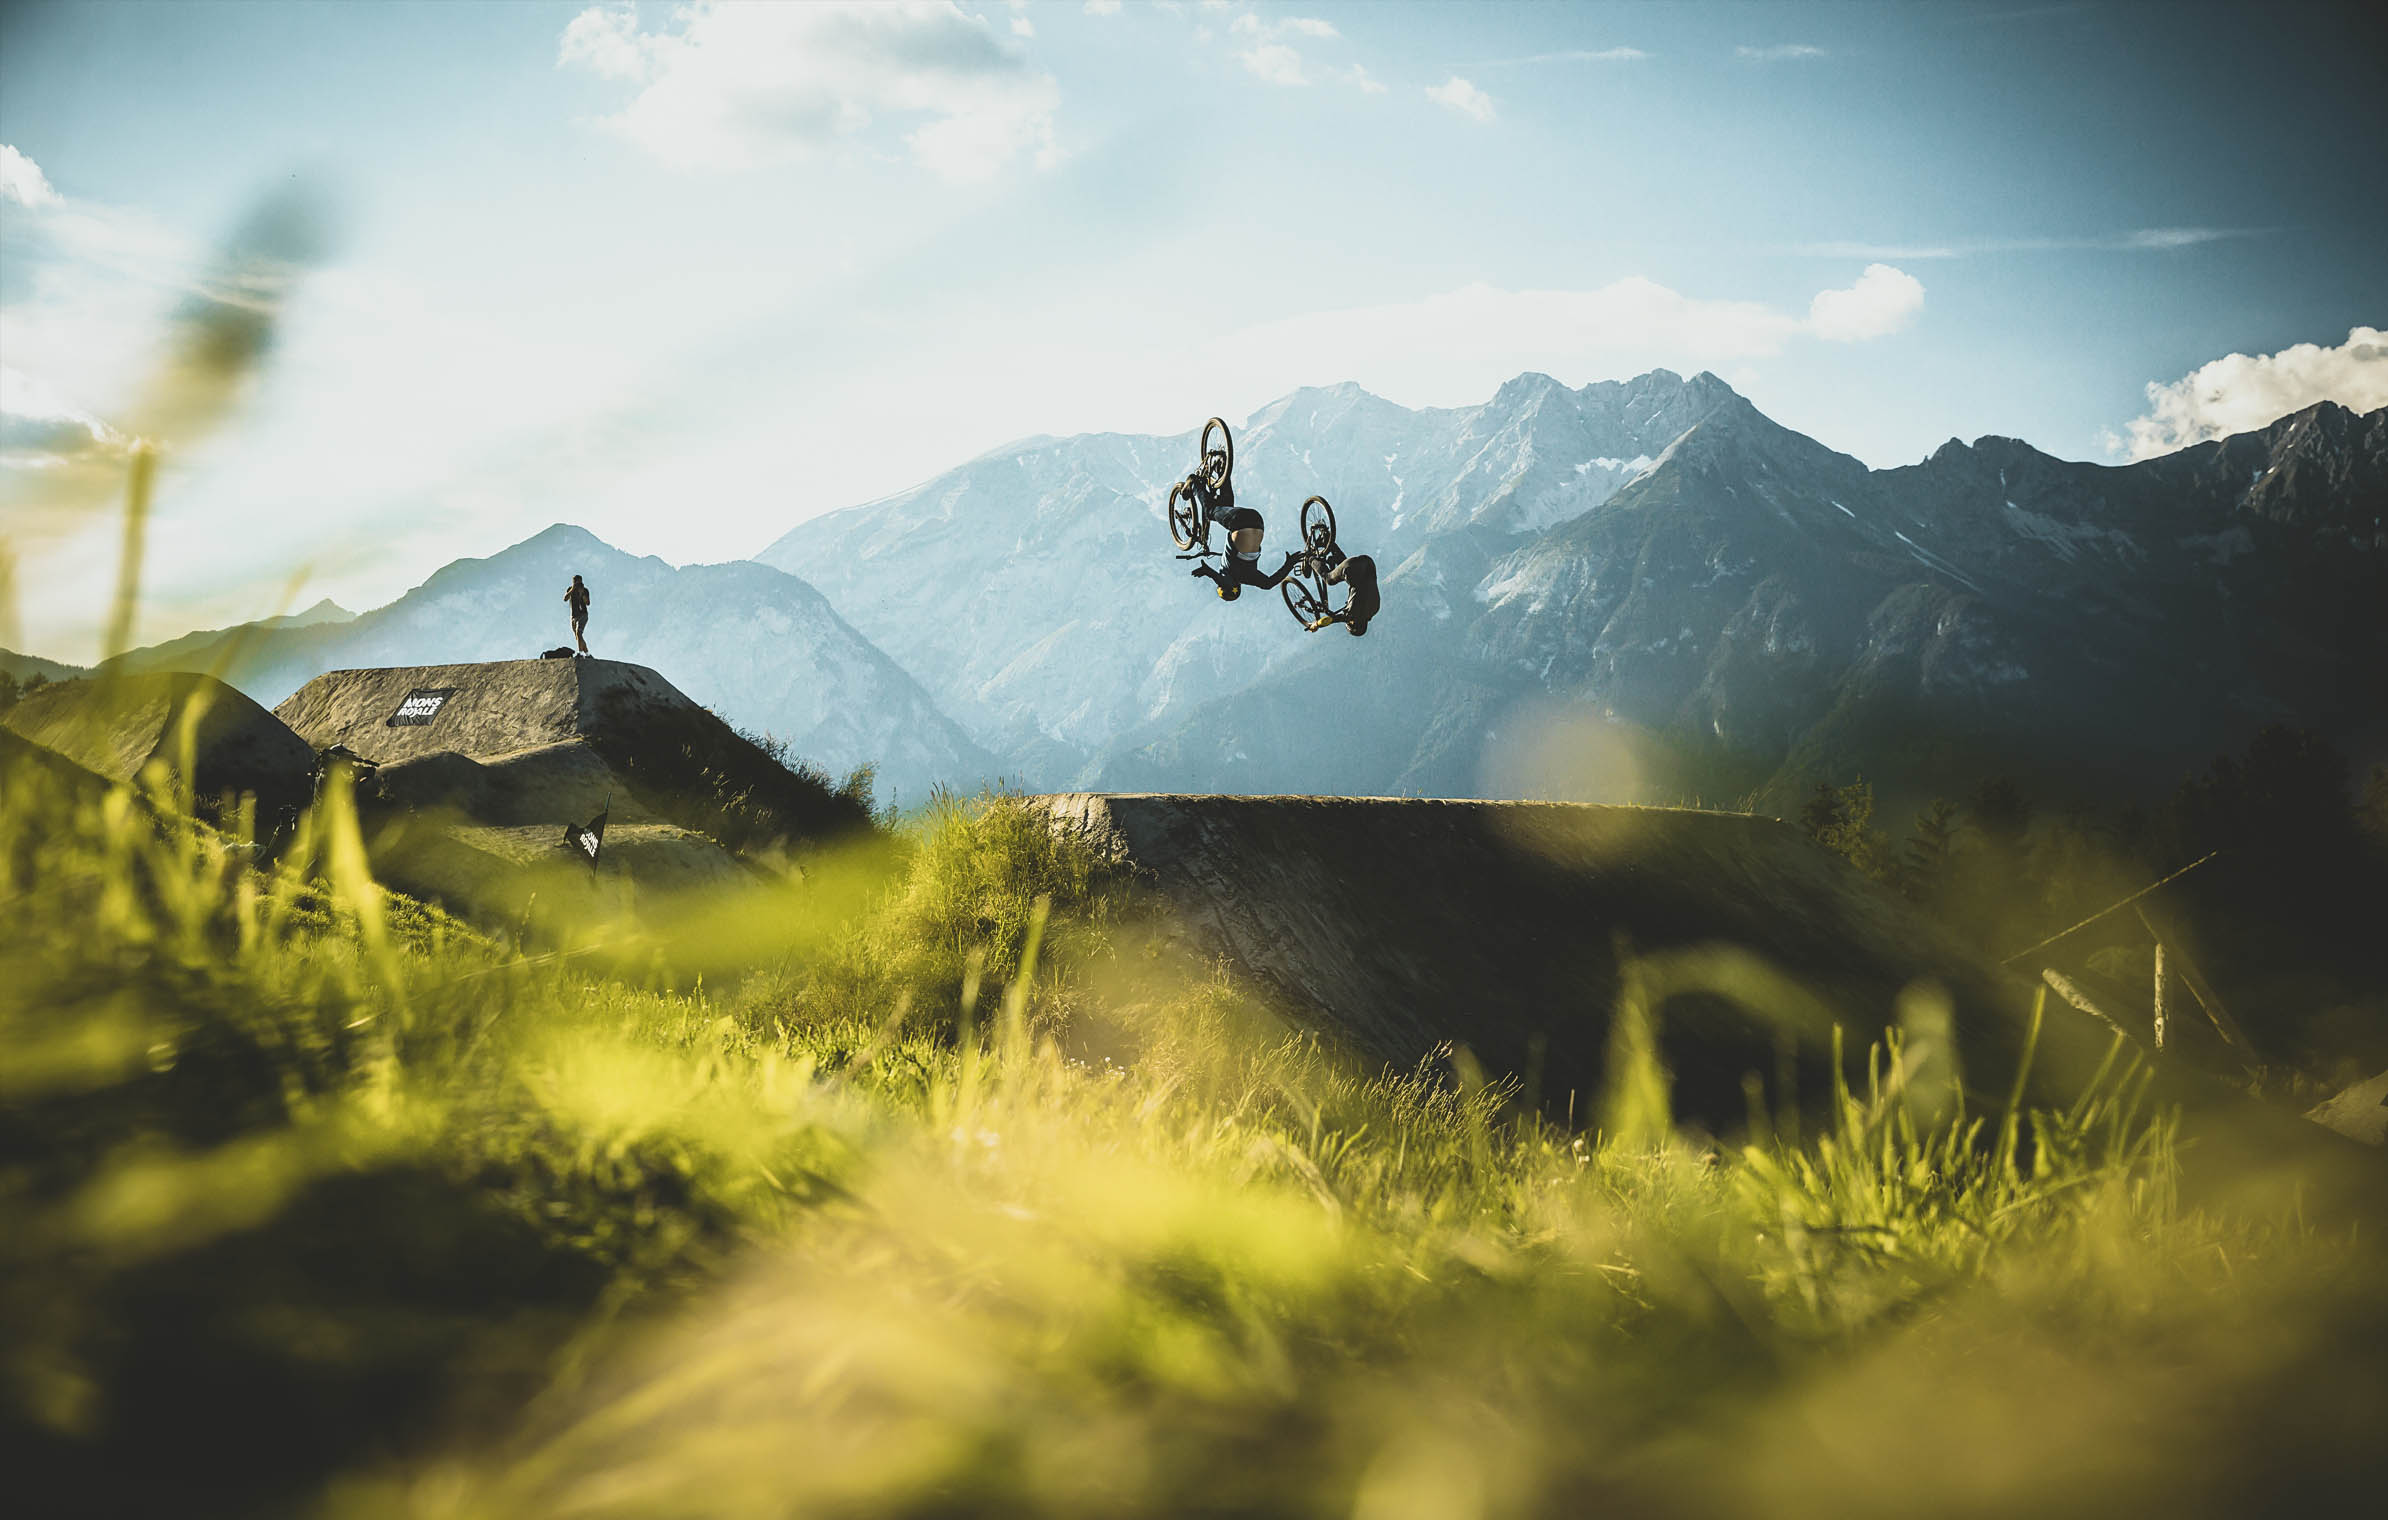 crankworx_dual_speed_and_style_flips_art_jump_mountainbike